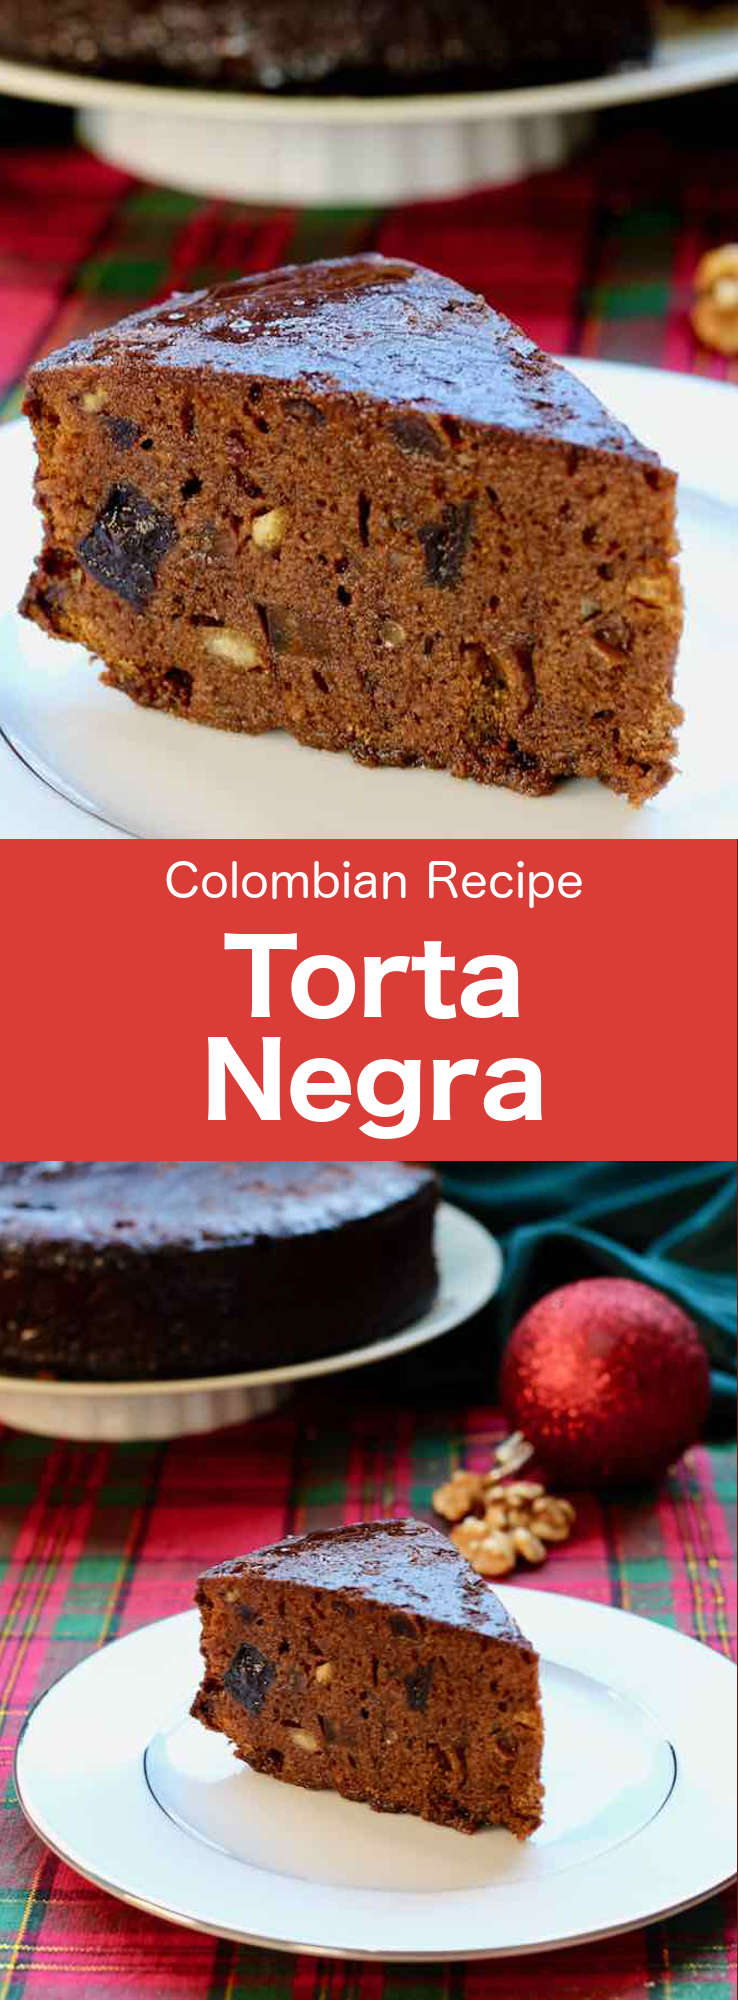 Torta negra is a Colombian cake prepared with dried fruits macerated in alcohol, that is very popular during Christmas throughout Latin America. #Colombia #ColombianCuisine #LatinAmerica #LatinAmericanCuisine #Christmas #ChristmasRecipe #WorldCuisine #196flavors